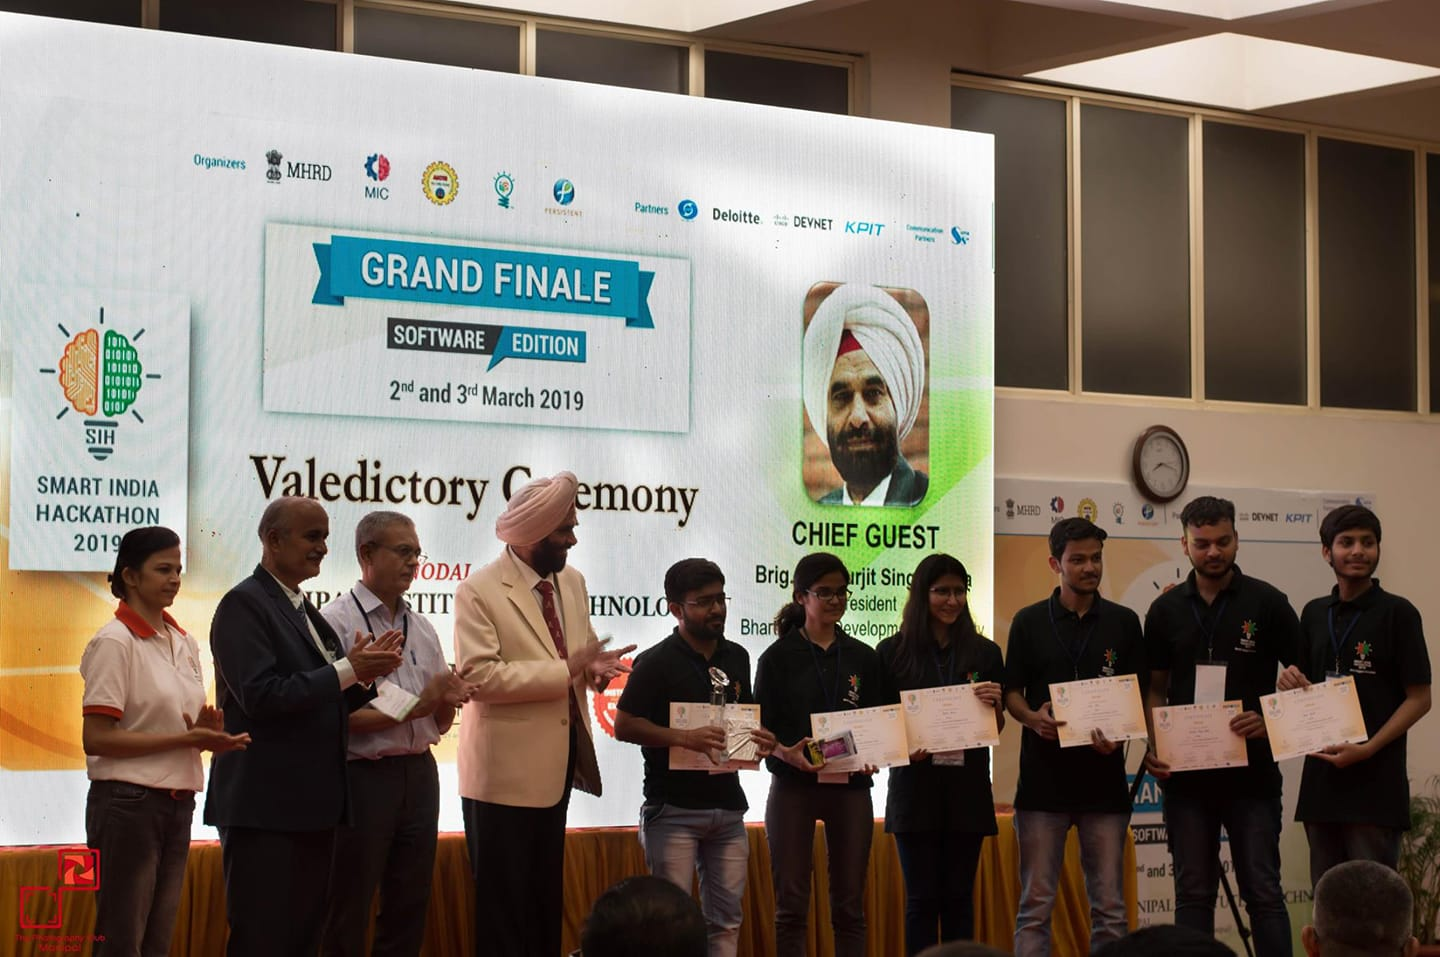 IETians won the grand finale of Smart India Hackathon-2019, conducted by MHRD in association with AICTE.